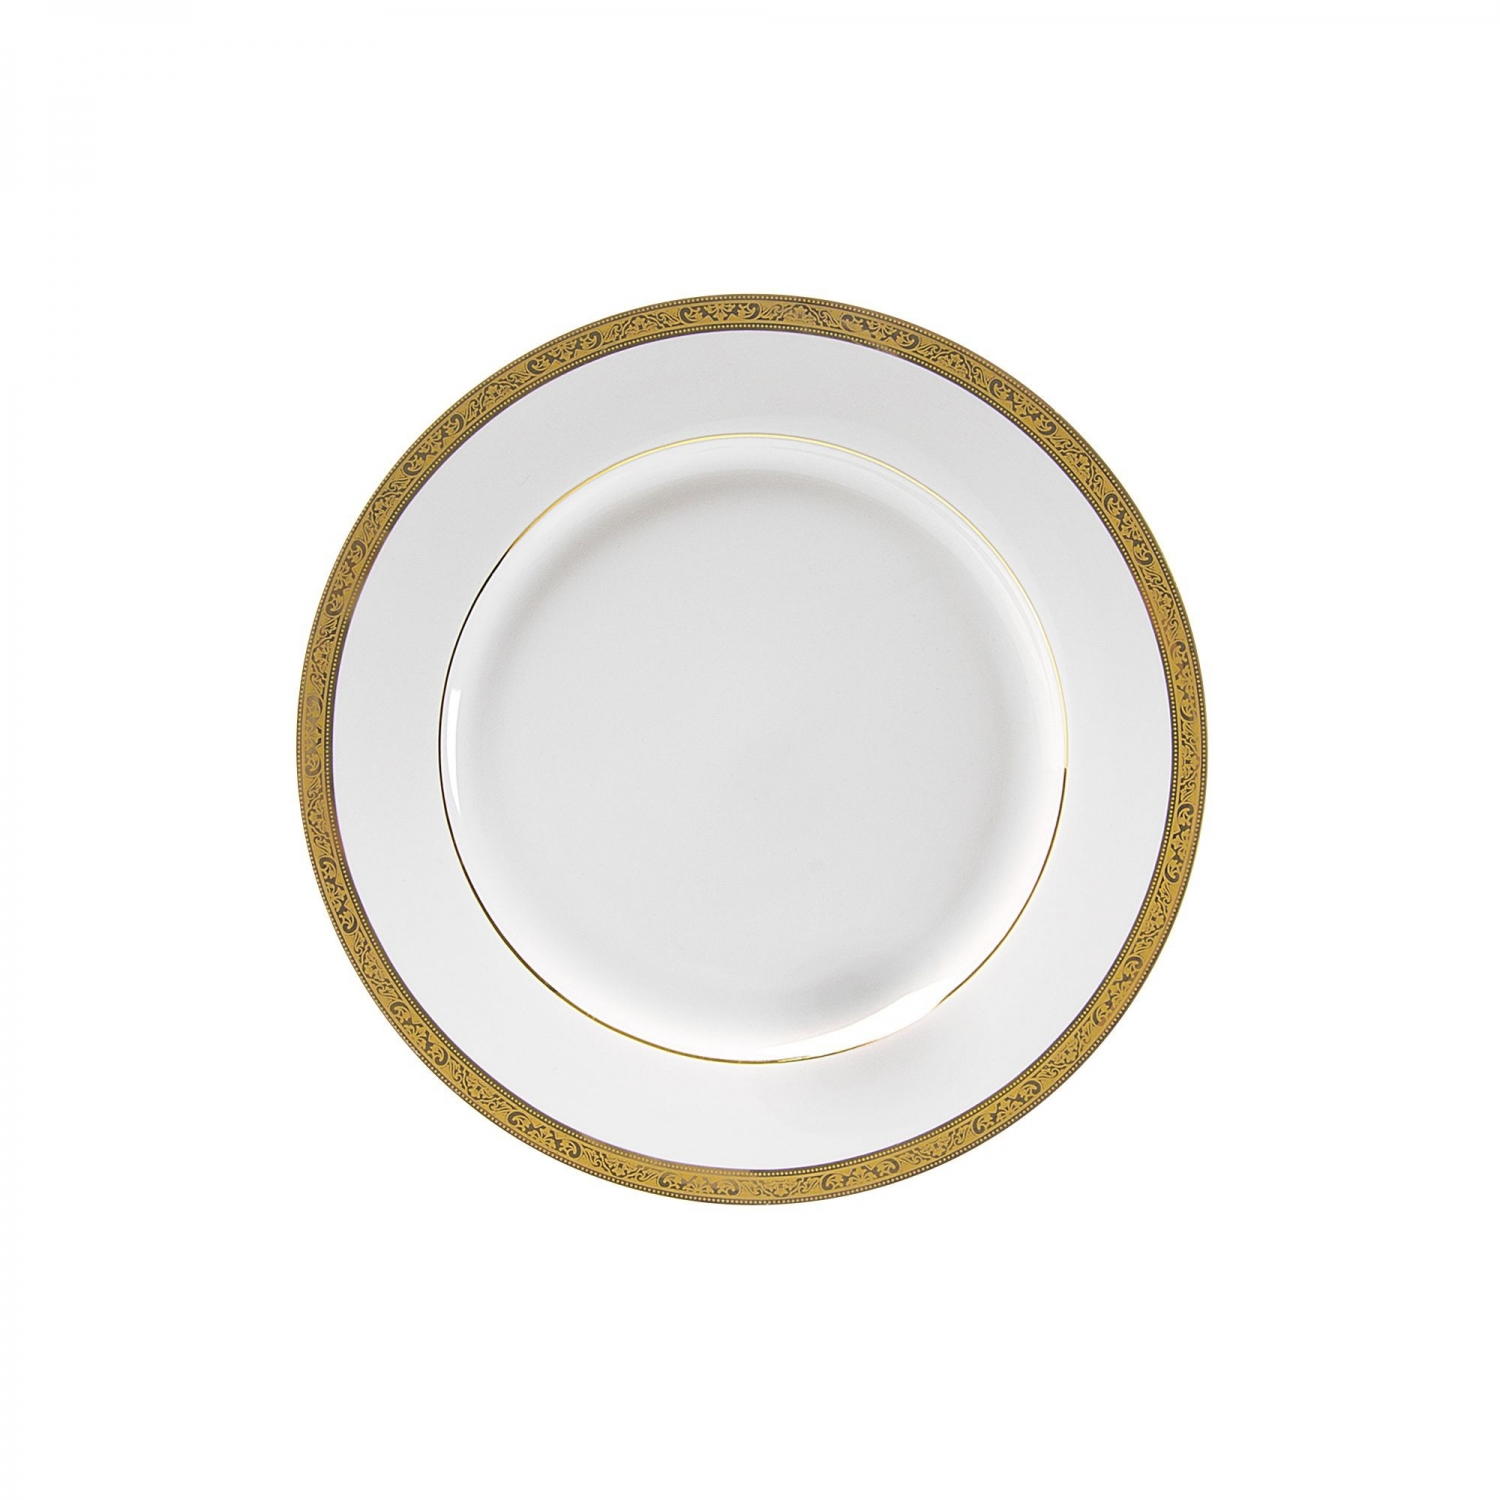 10 Strawberry Street PAR-4G Paradise Gold Salad/Dessert Plate 8""